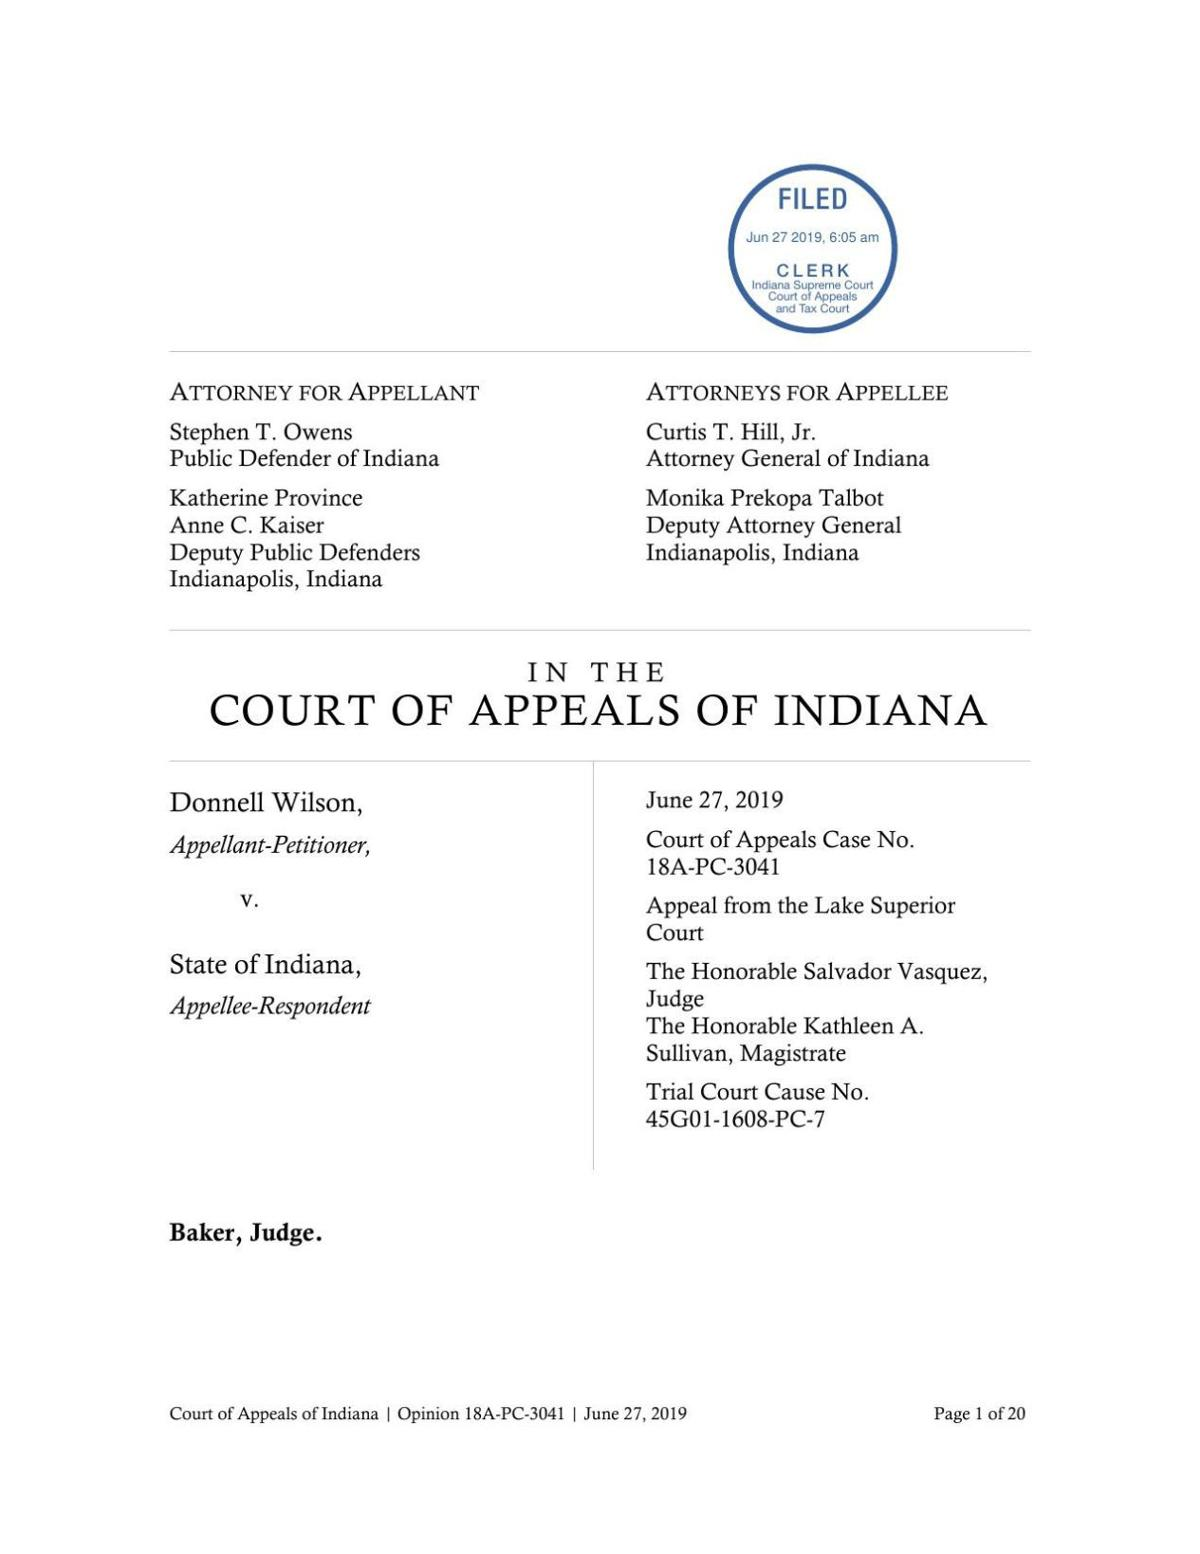 Wilson v. State ruling of Indiana Court of Appeals